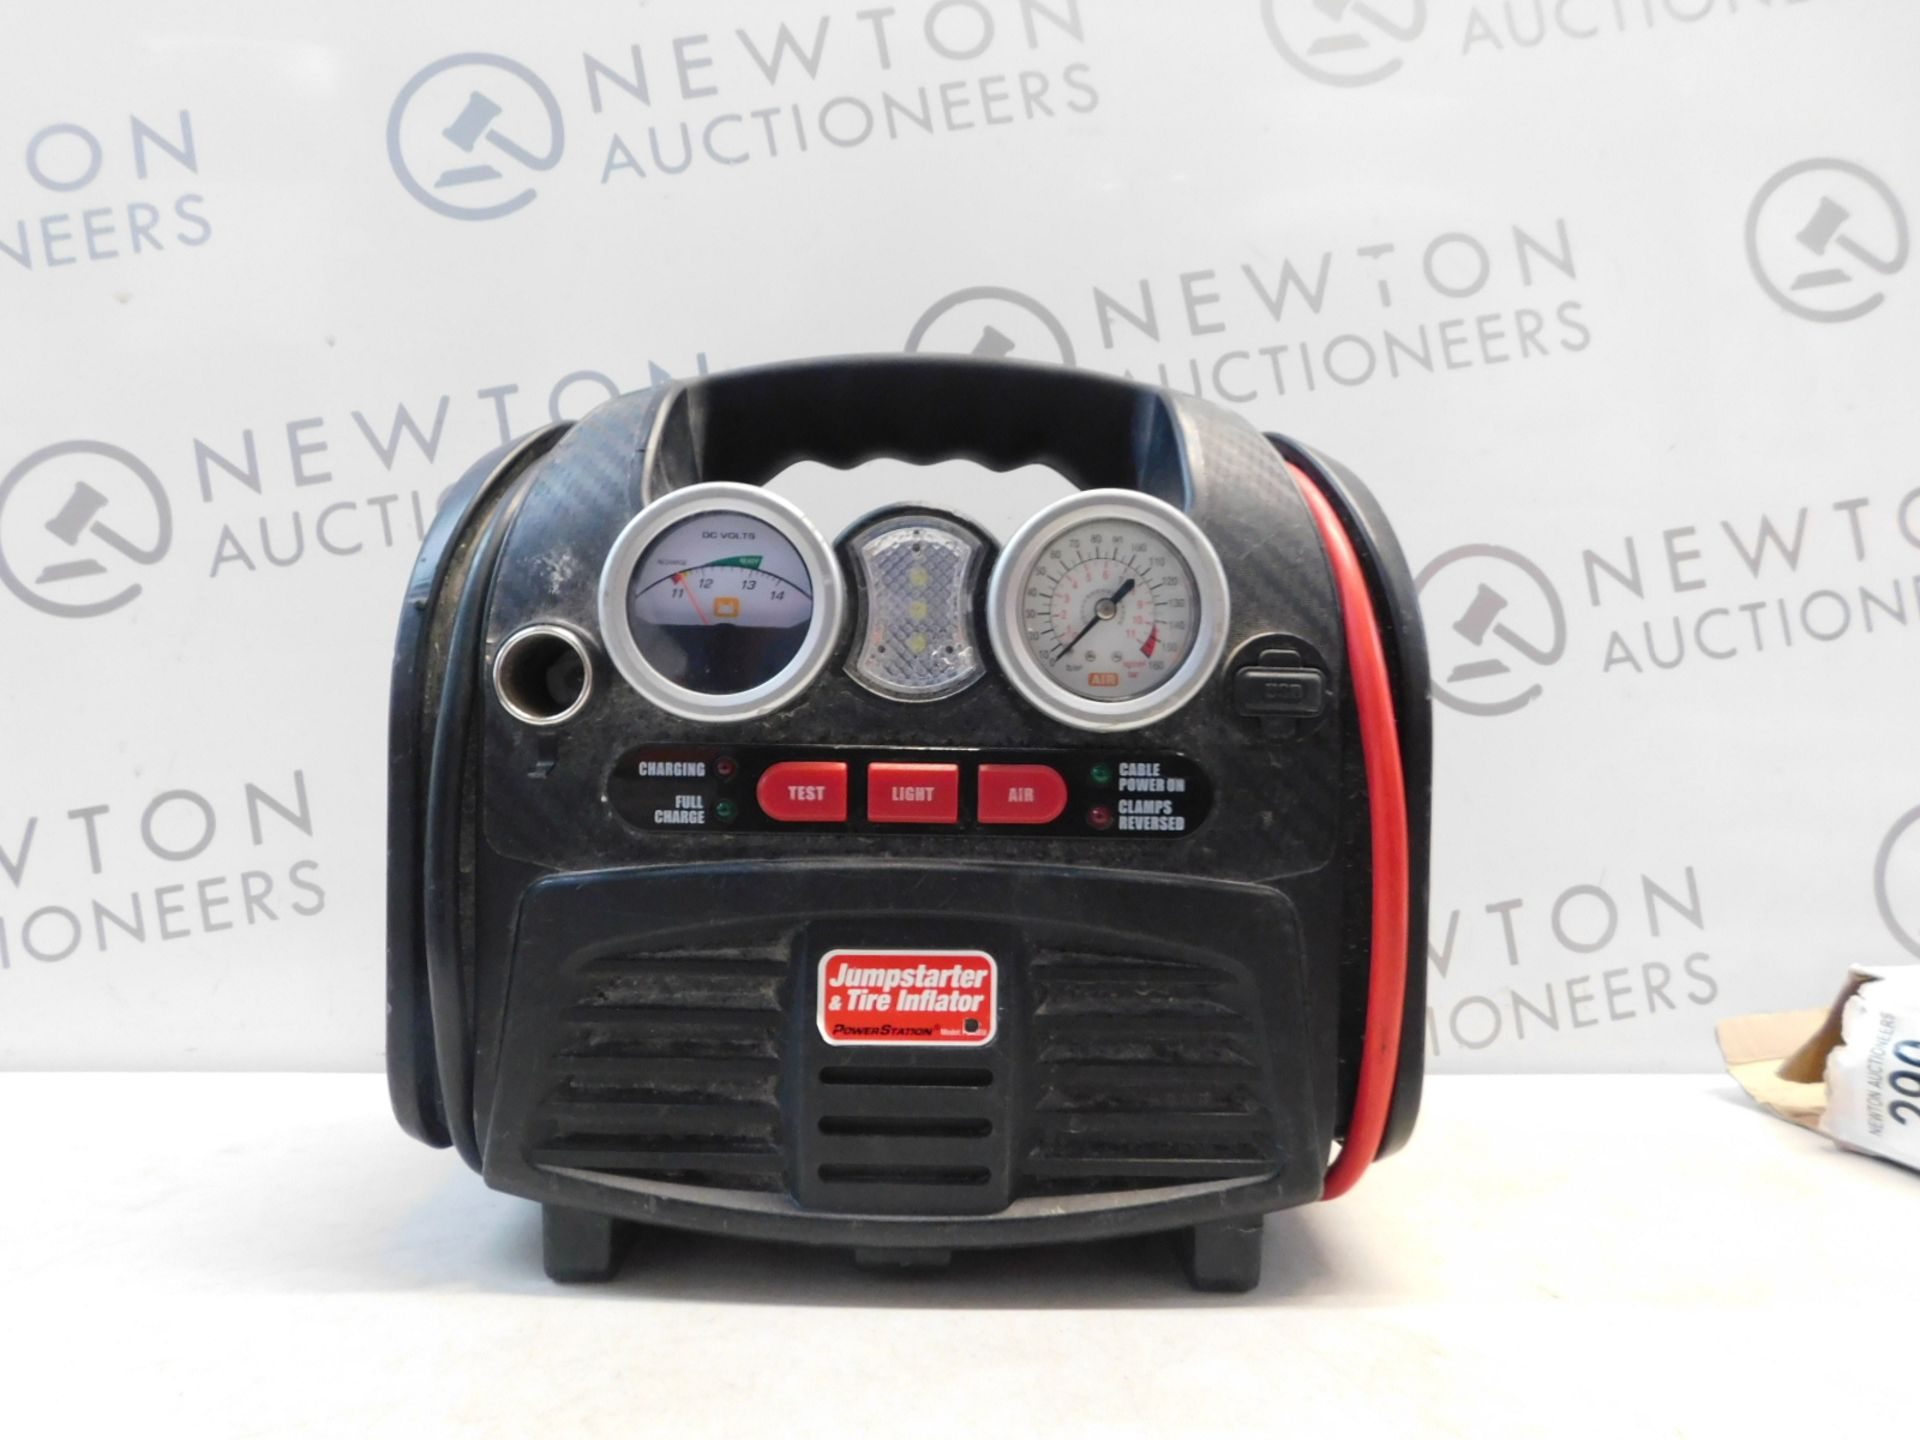 Lot 108 - 1 POWERSTATION PSX3 BATTERY JUMPSTARTER WITH BUILT IN LIGHT AND COMPRESSOR RRP £159